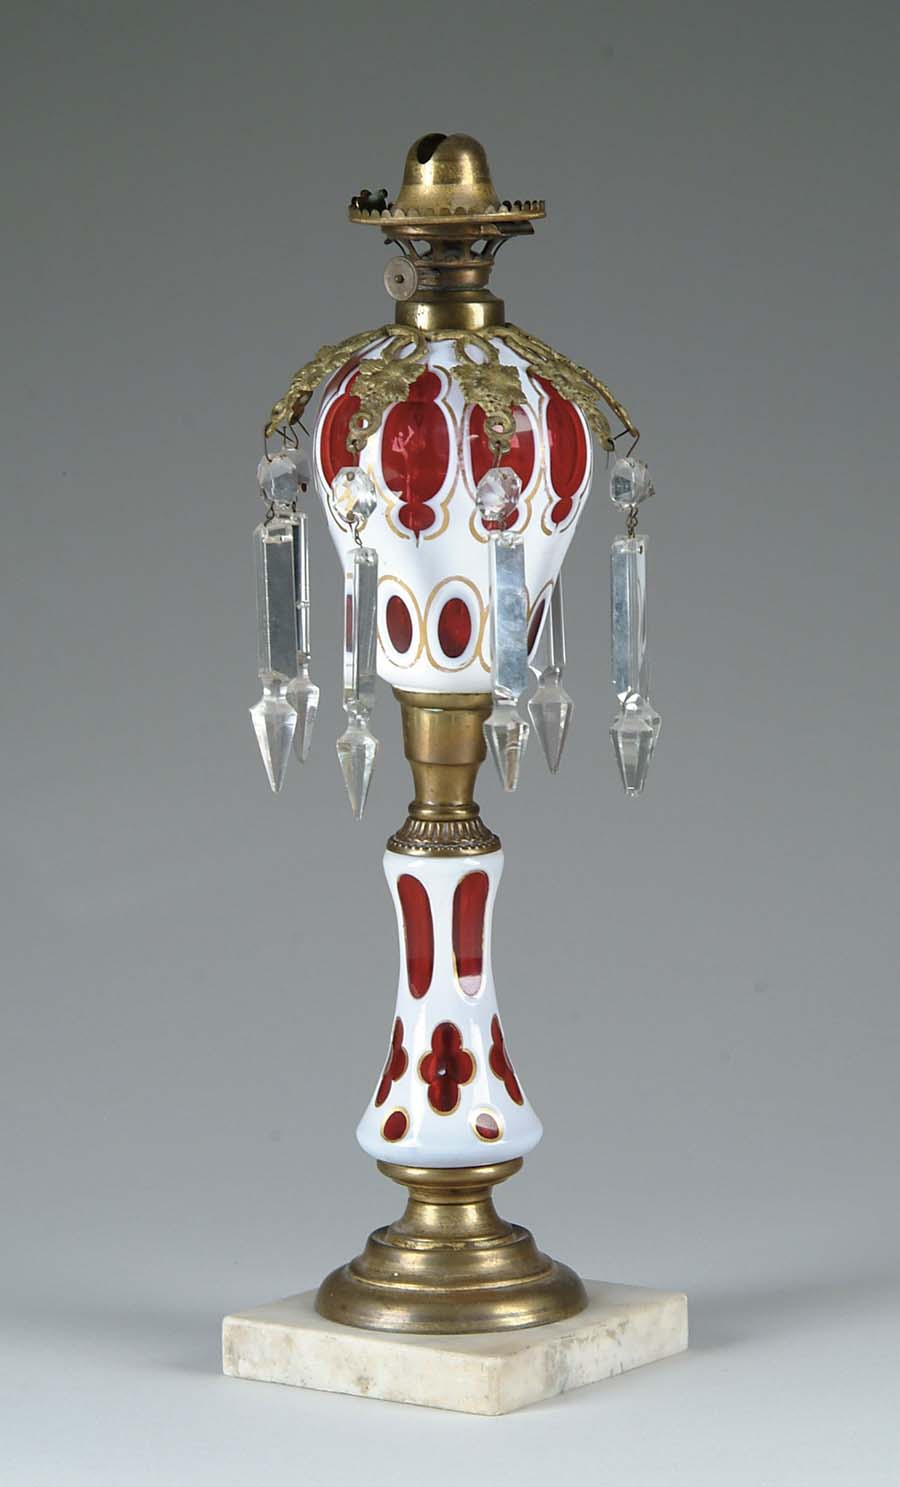 CUT OVERLAY OIL LAMP. Outstanding early lamp